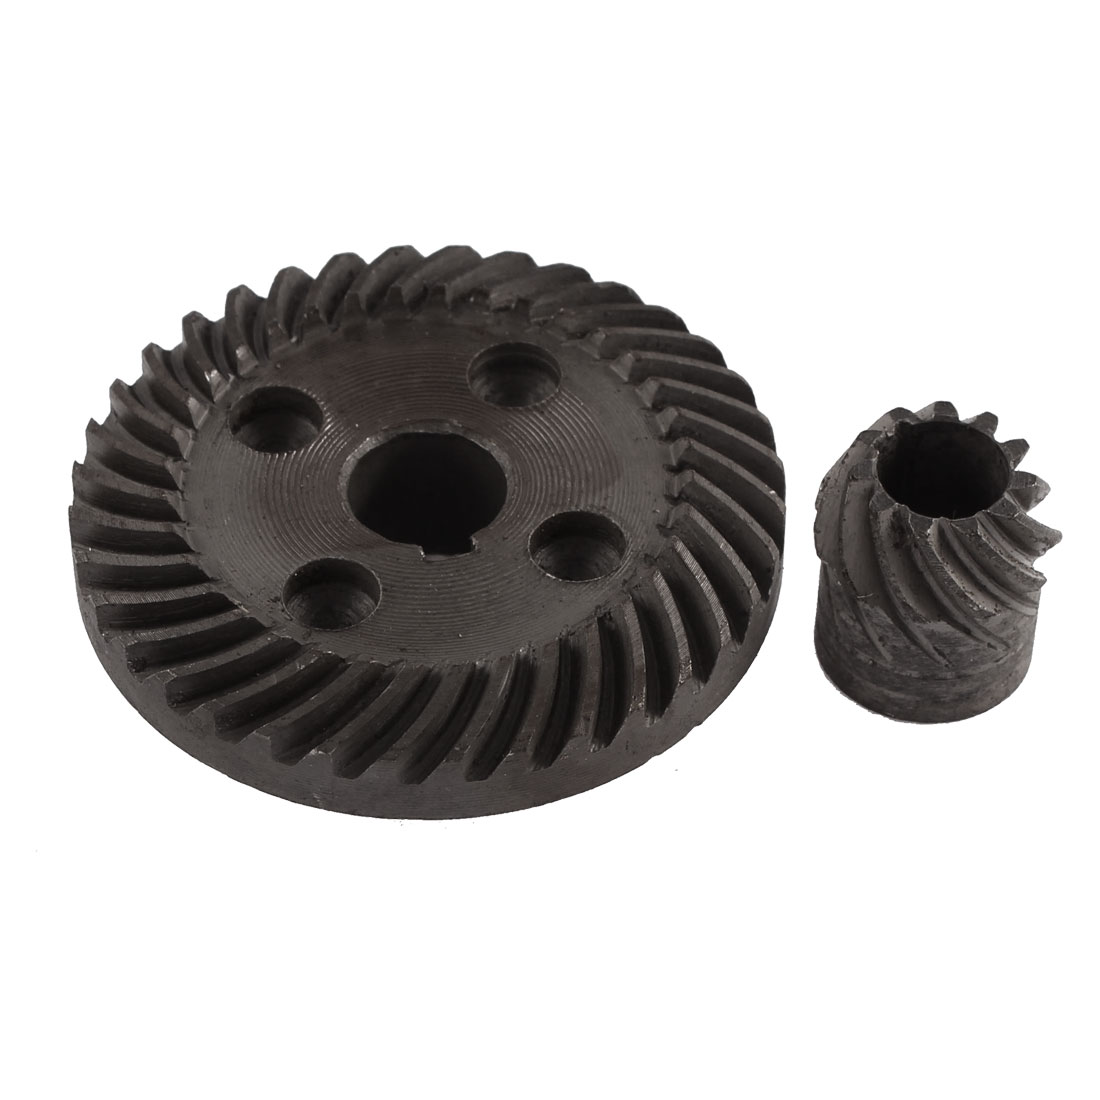 Electric Grinder Spare Parts Black Metal Gear Wheel Set for Dewalt 100